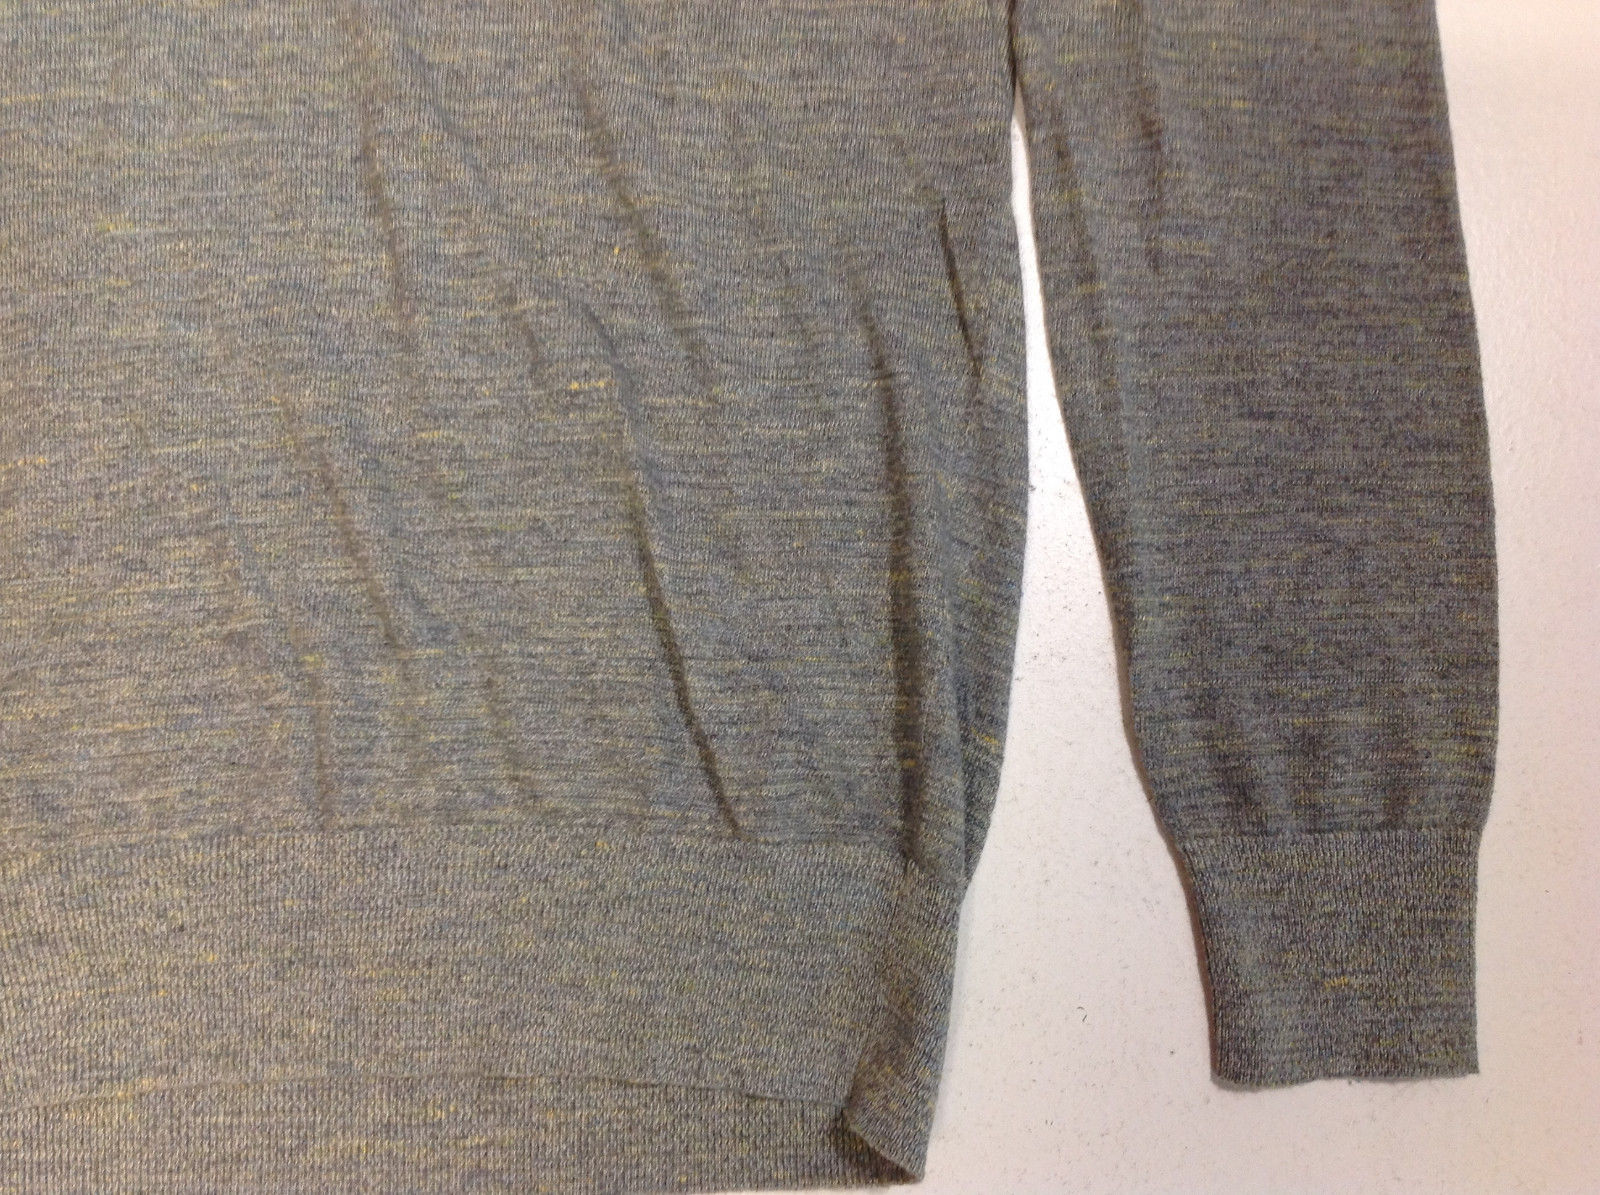 The Men's Store at Bloomingdale's Cotton Linen Space Dyed Sweater, Size L, $98